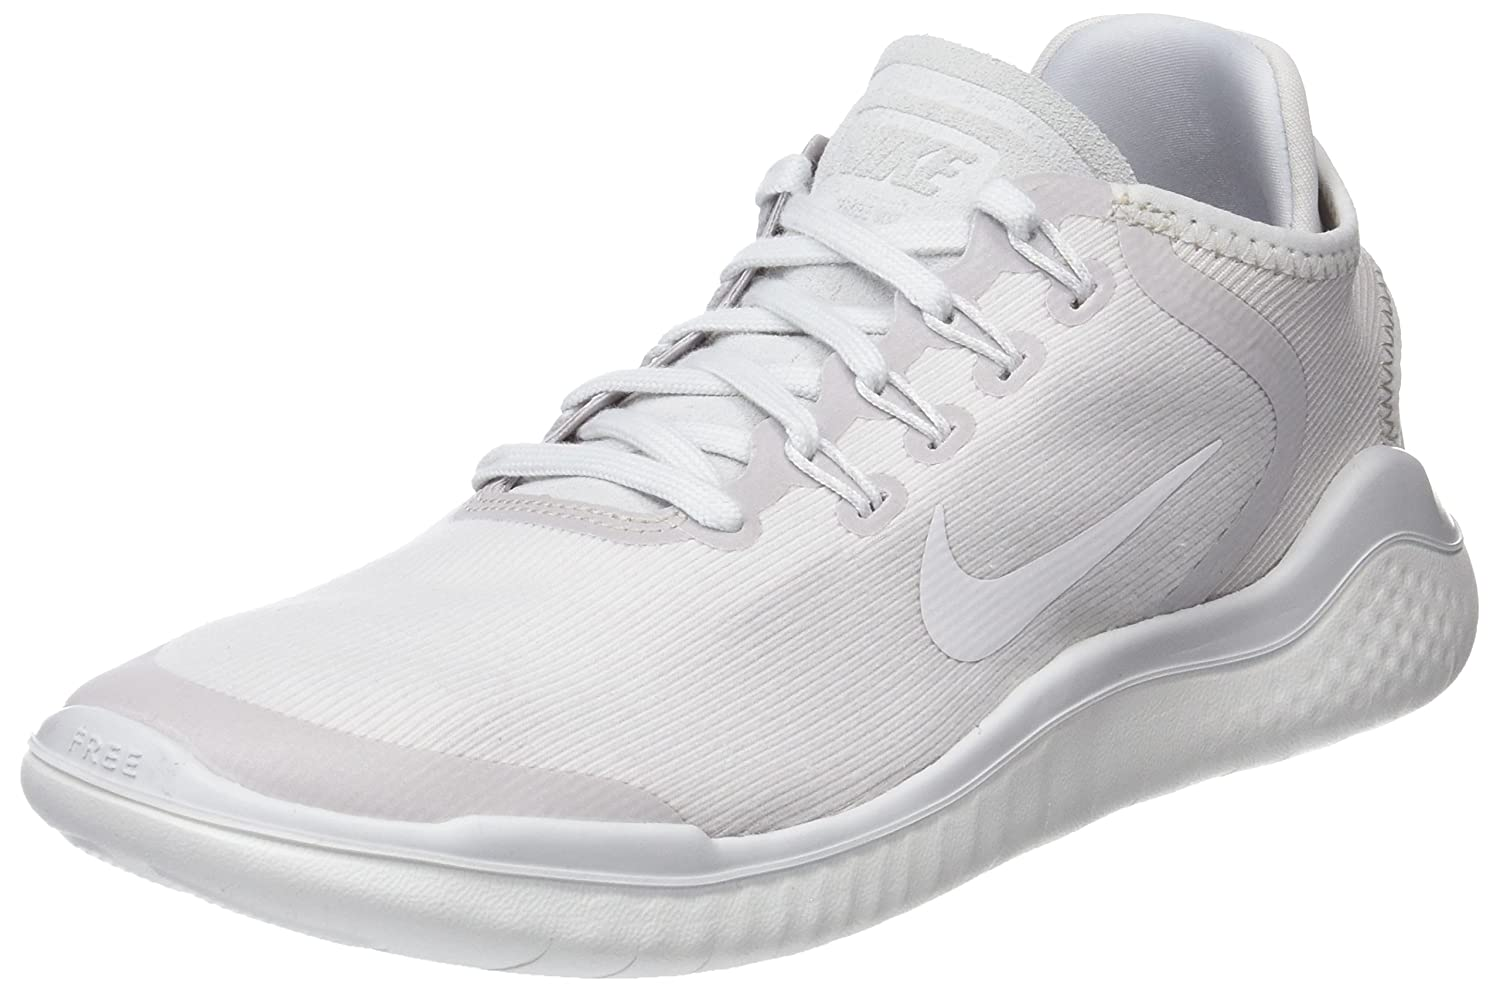 check out 53c07 93092 Nike Womens Free Rn 2018 Sun Low Top Lace Up Running Sneaker